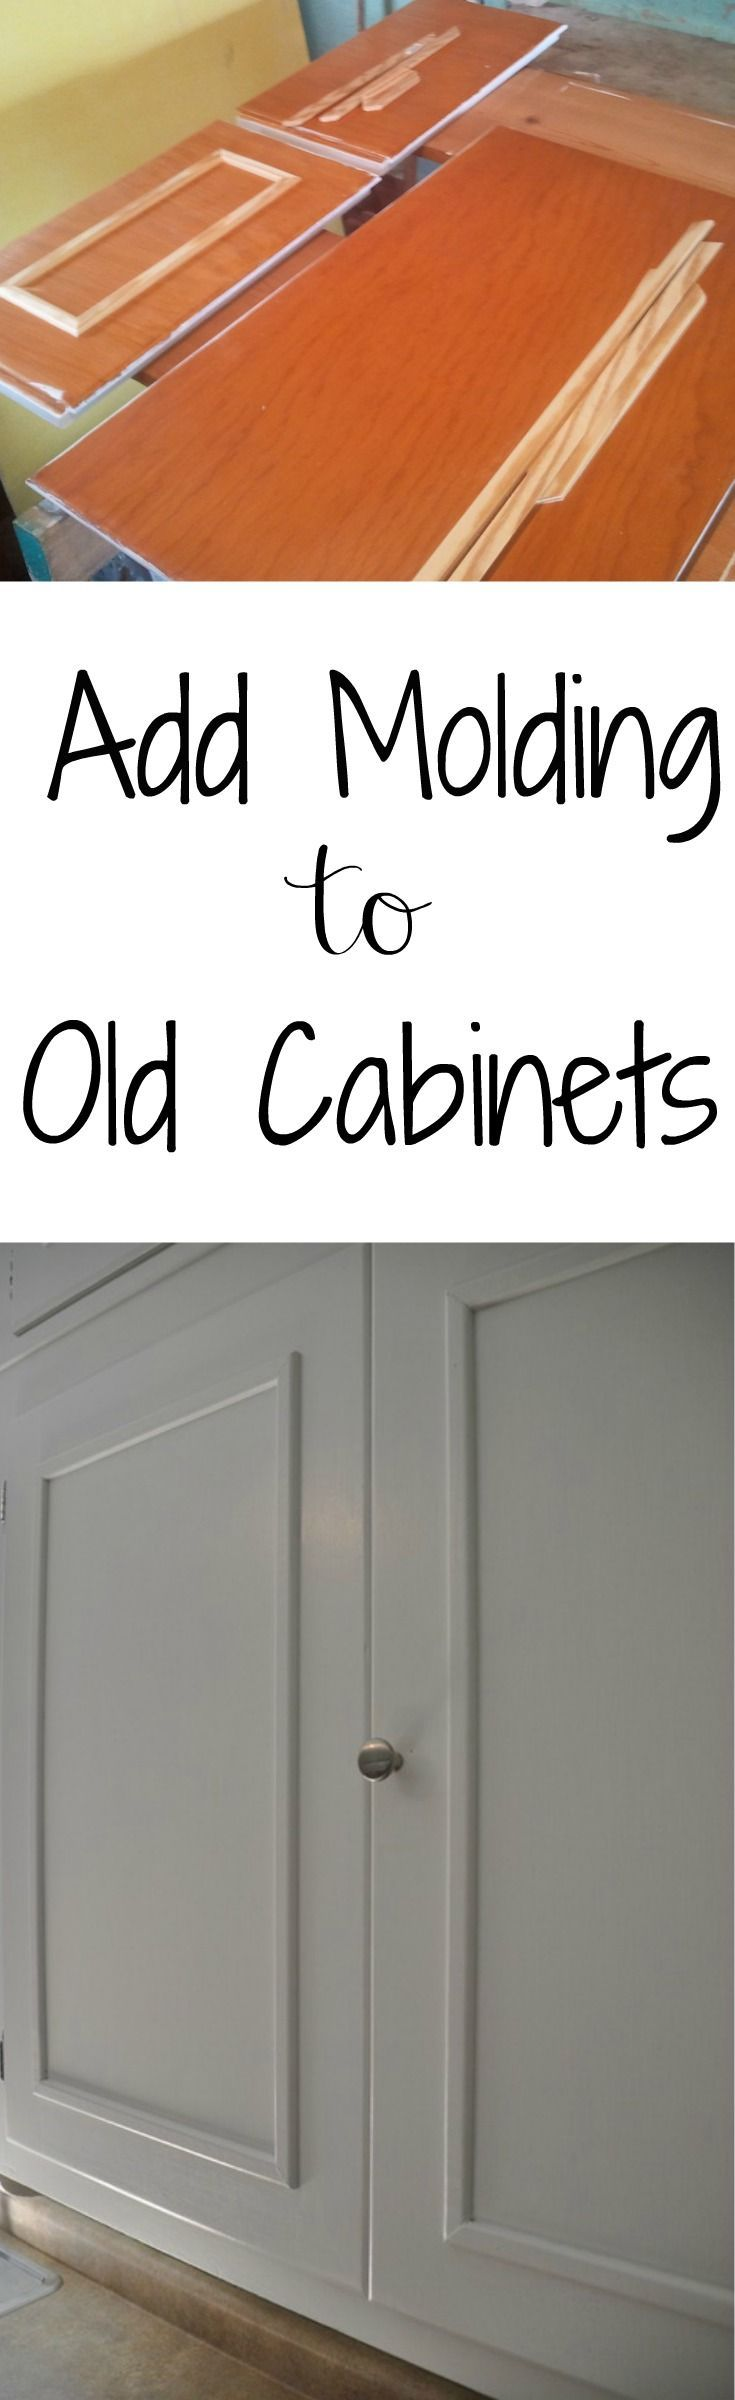 Amazing How To Add Cabinet Molding. Update Kitchen ...